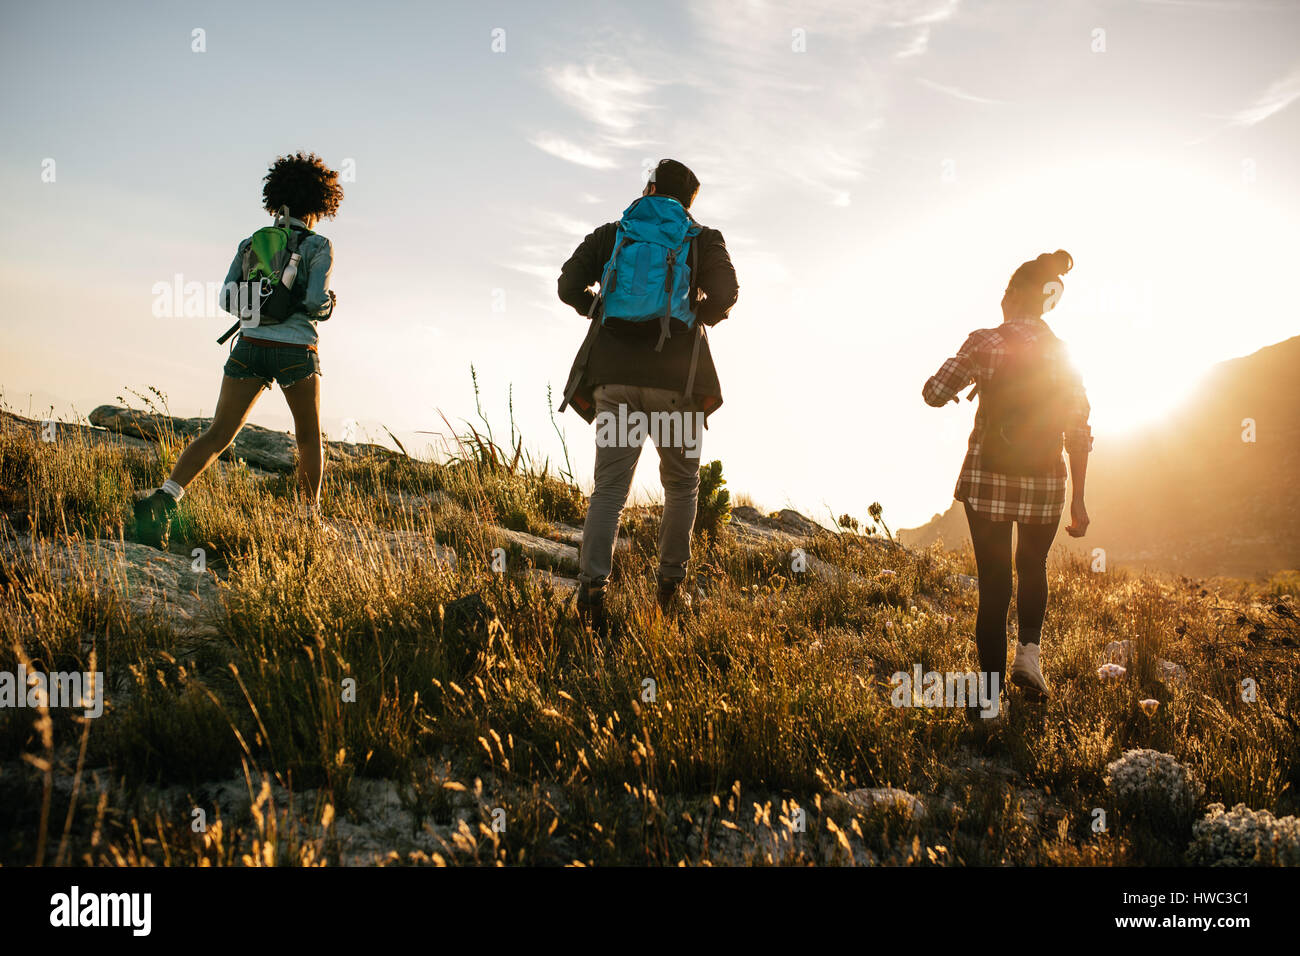 Three young friends on a country walk. Group of people hiking through countryside on summer day. - Stock Image